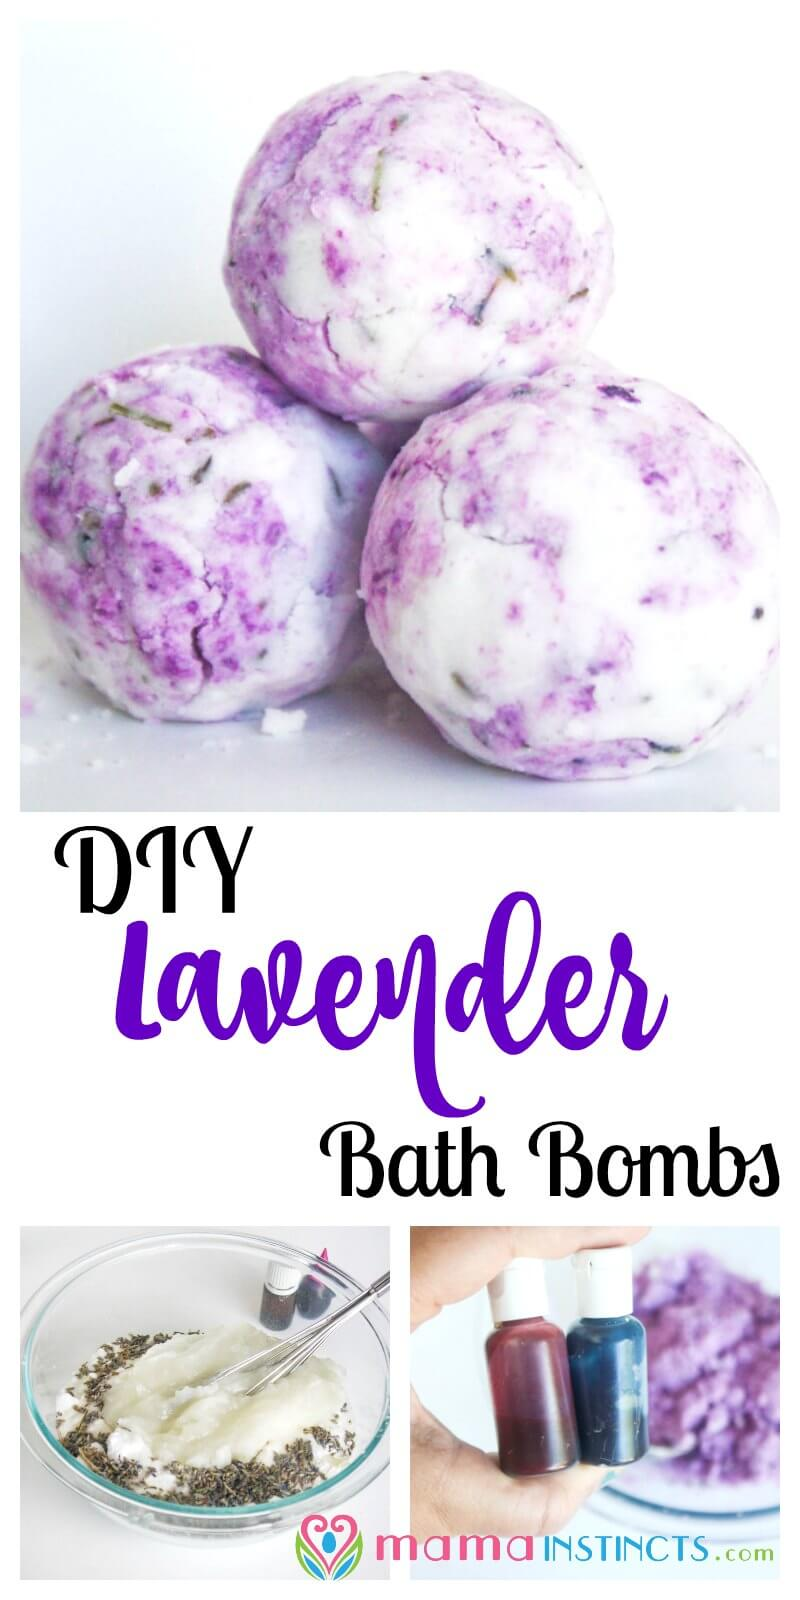 Diy lavender bath bombs mama instincts try this easy lavender lemon and peppermint bath bomb recipe and give yourself a spa solutioingenieria Images